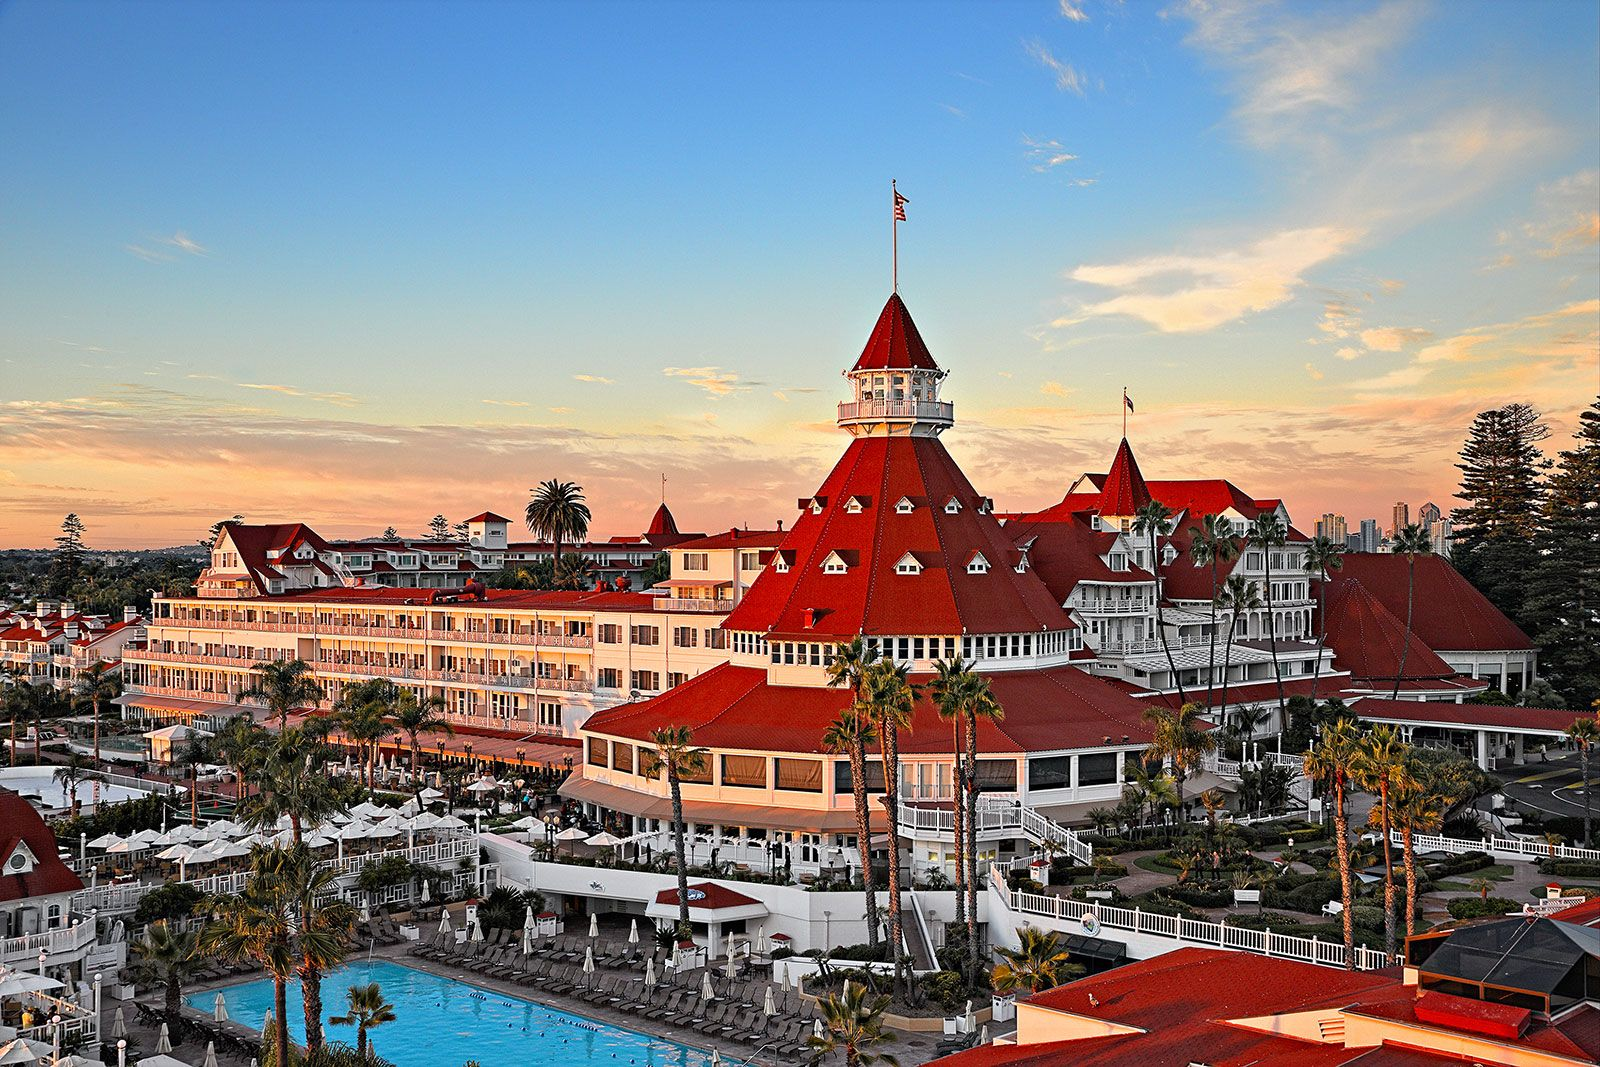 Iconic Hotel Del Coronado Sold In Multi-billion Dollar Deal